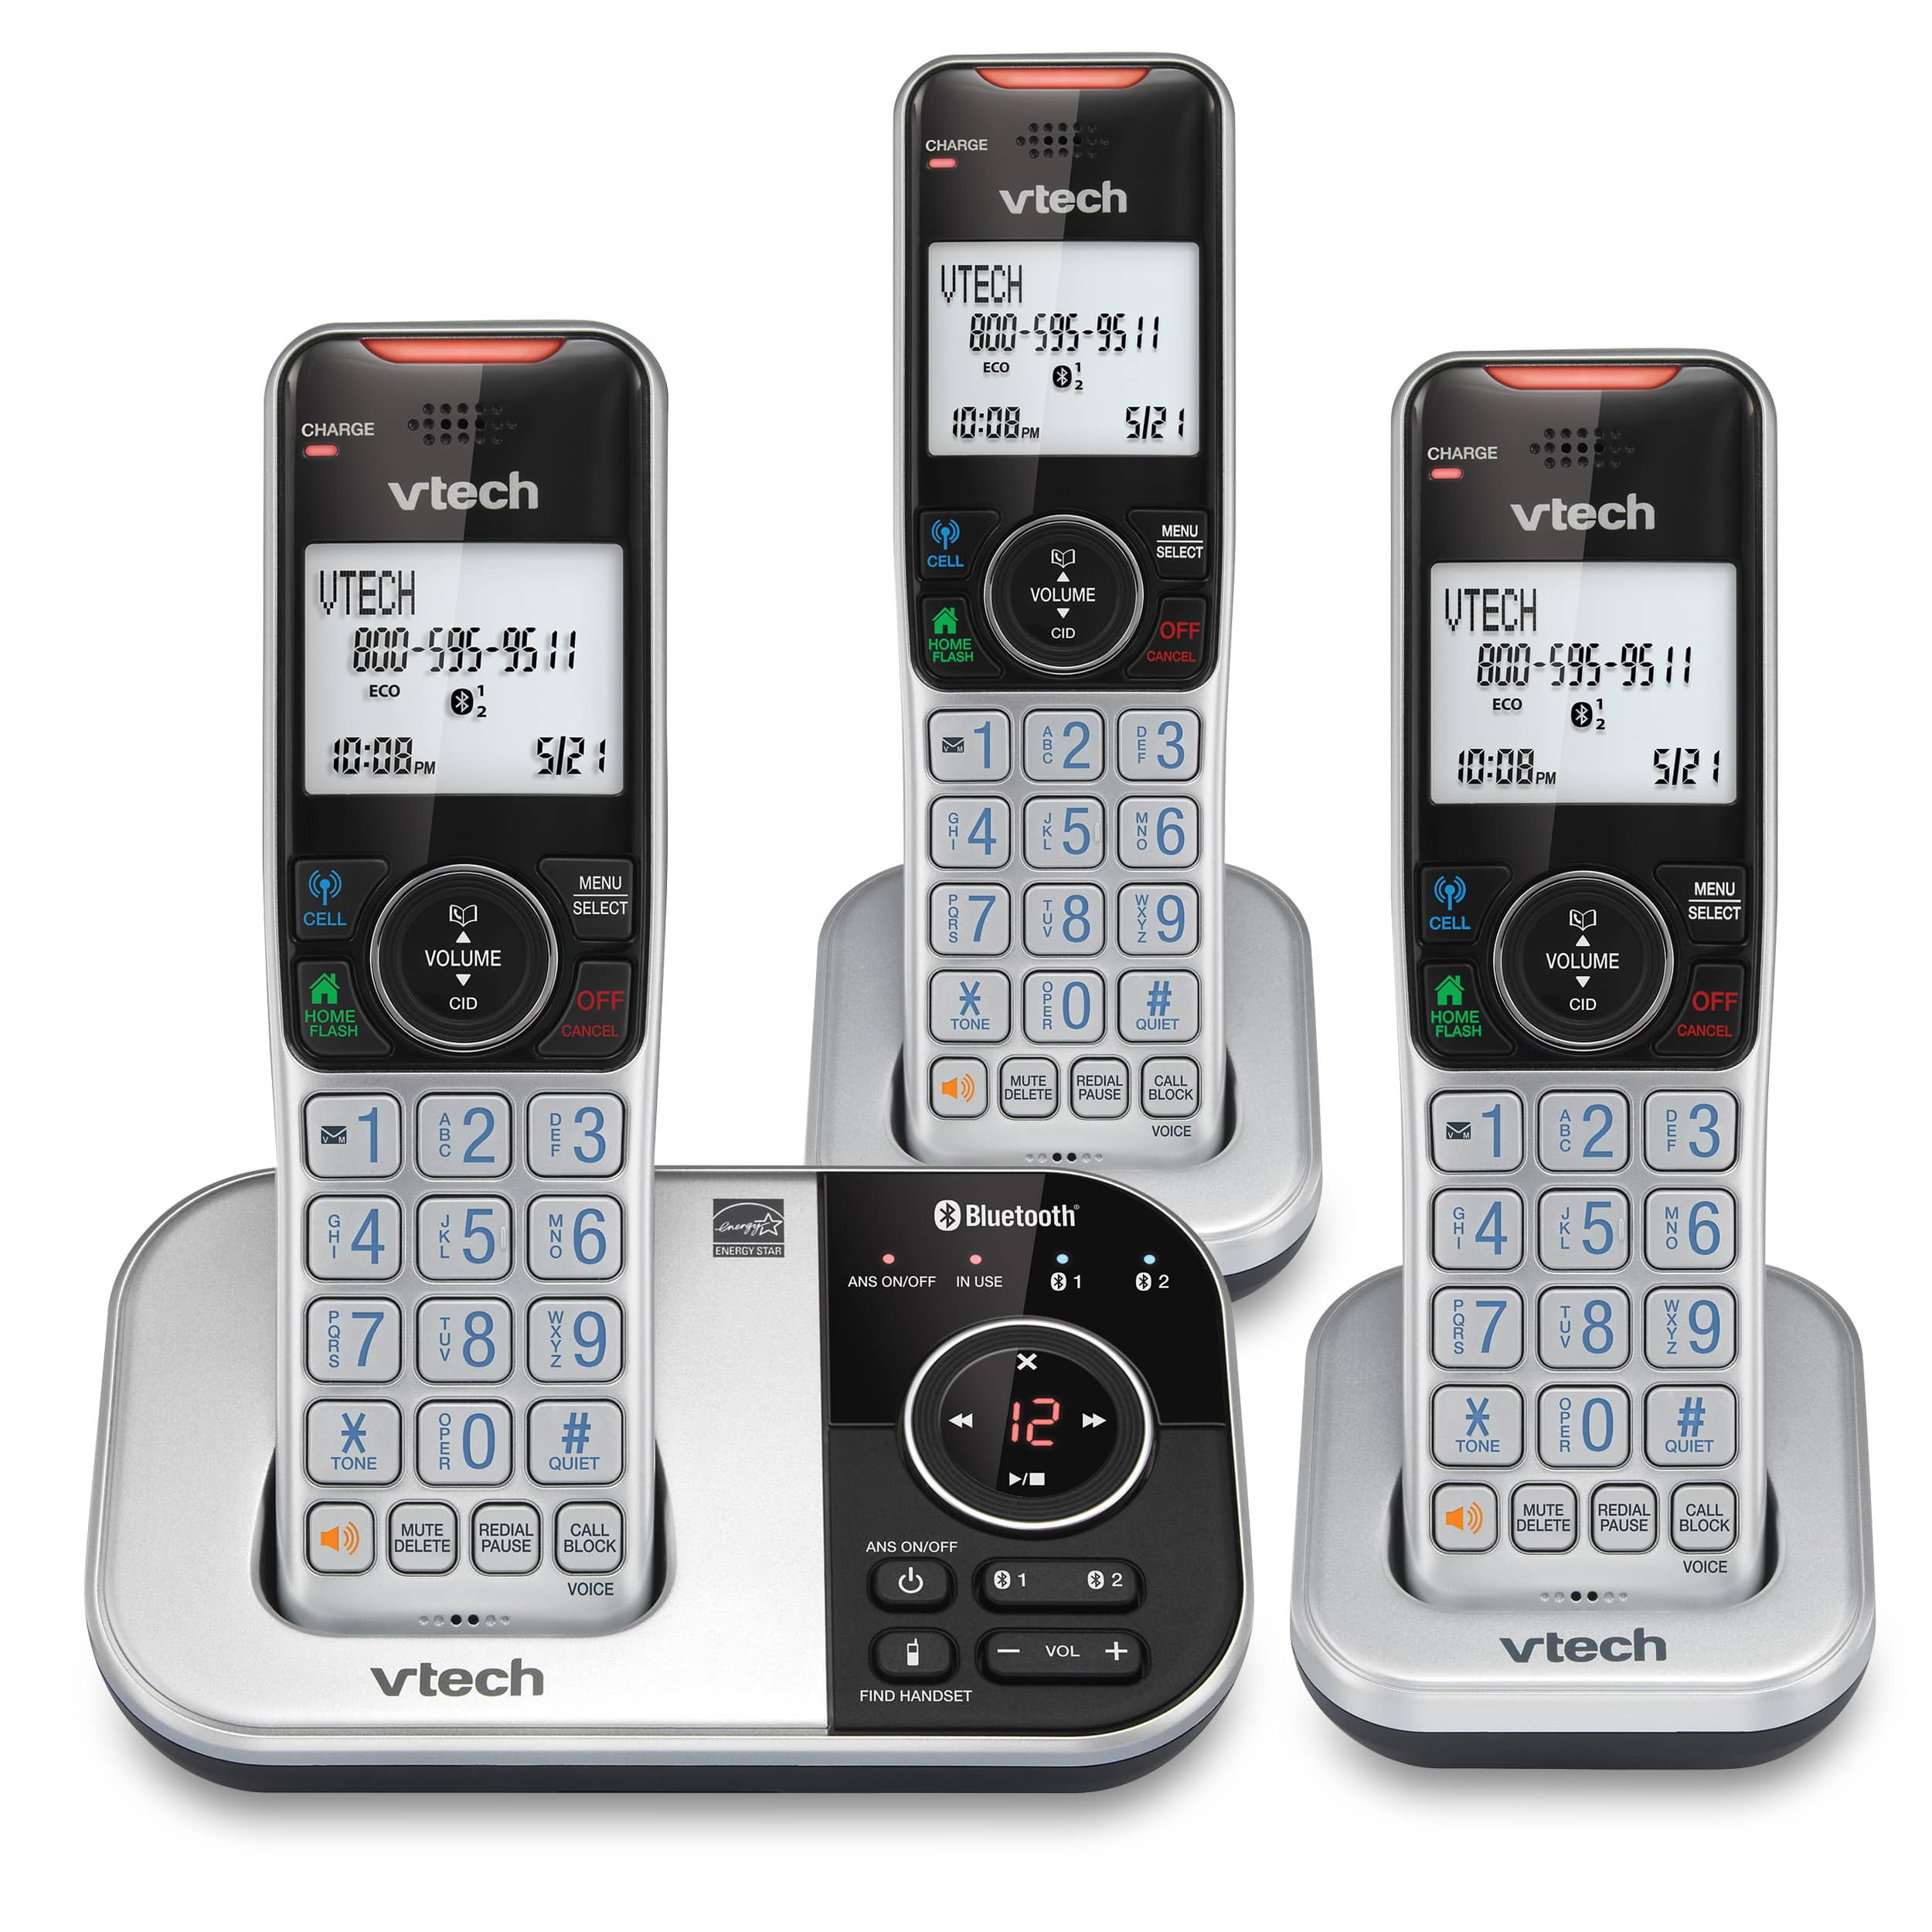 3-Handset Expandable Cordless Phone with Bluetooth Connect to Cell, Smart Call Blocker and Answering System (Silver & Black)